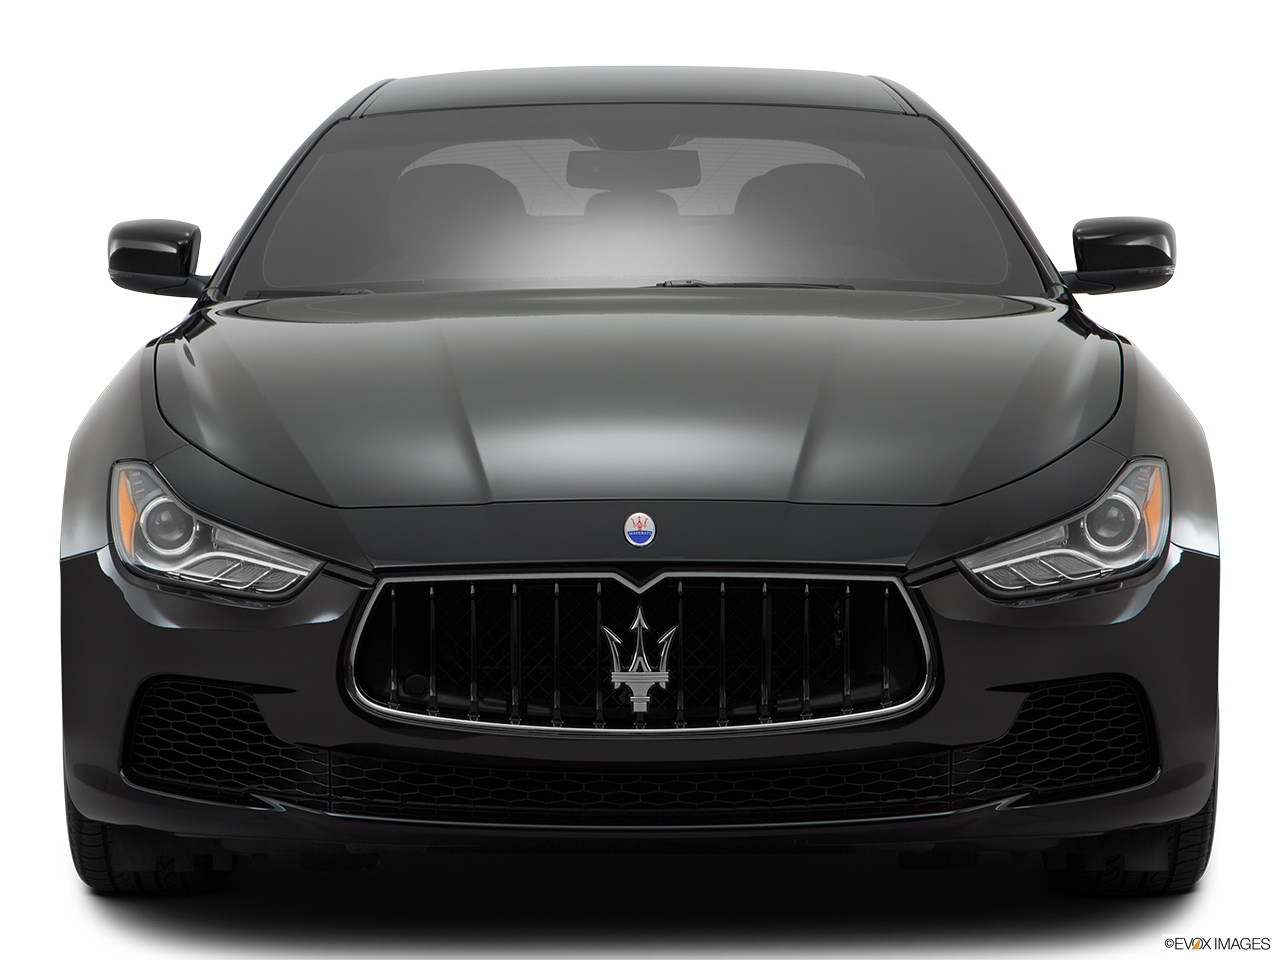 2015 Maserati Ghibli Base Low/wide front.